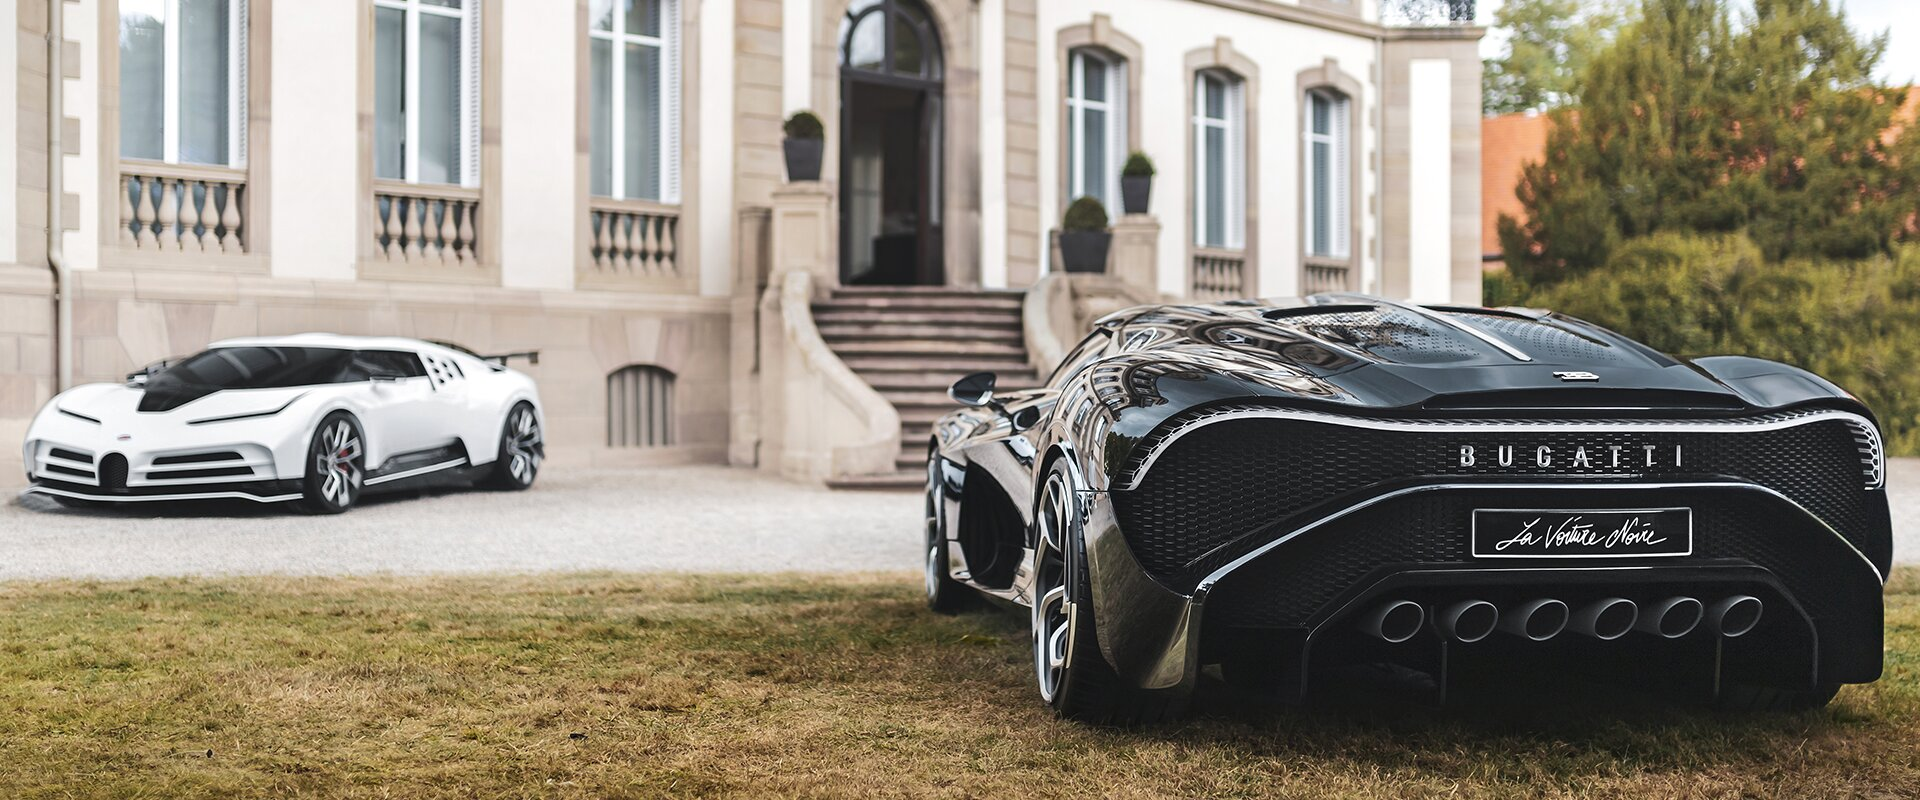 Bugatti One Off Models